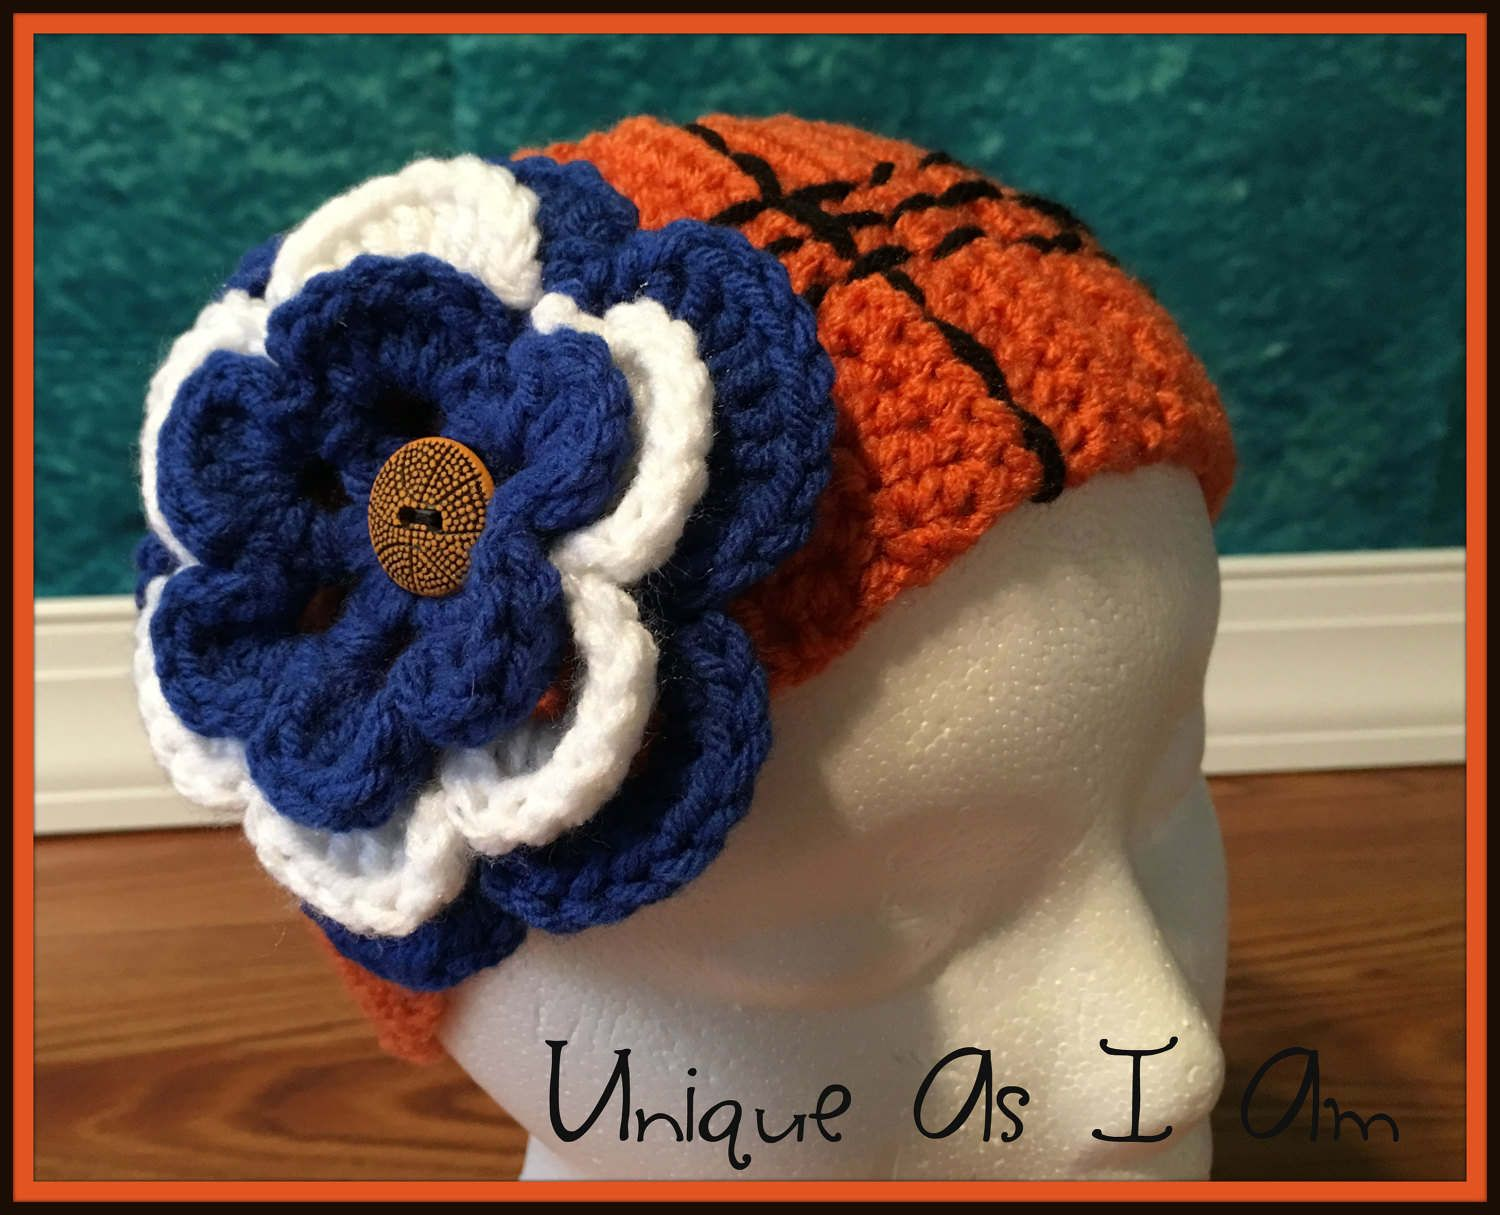 4a763f68c9e Crochet Basketball Themed Headband Earwarmer with Interchangeable Team  Flowers - Adult by UniqueAsIAm on Etsy